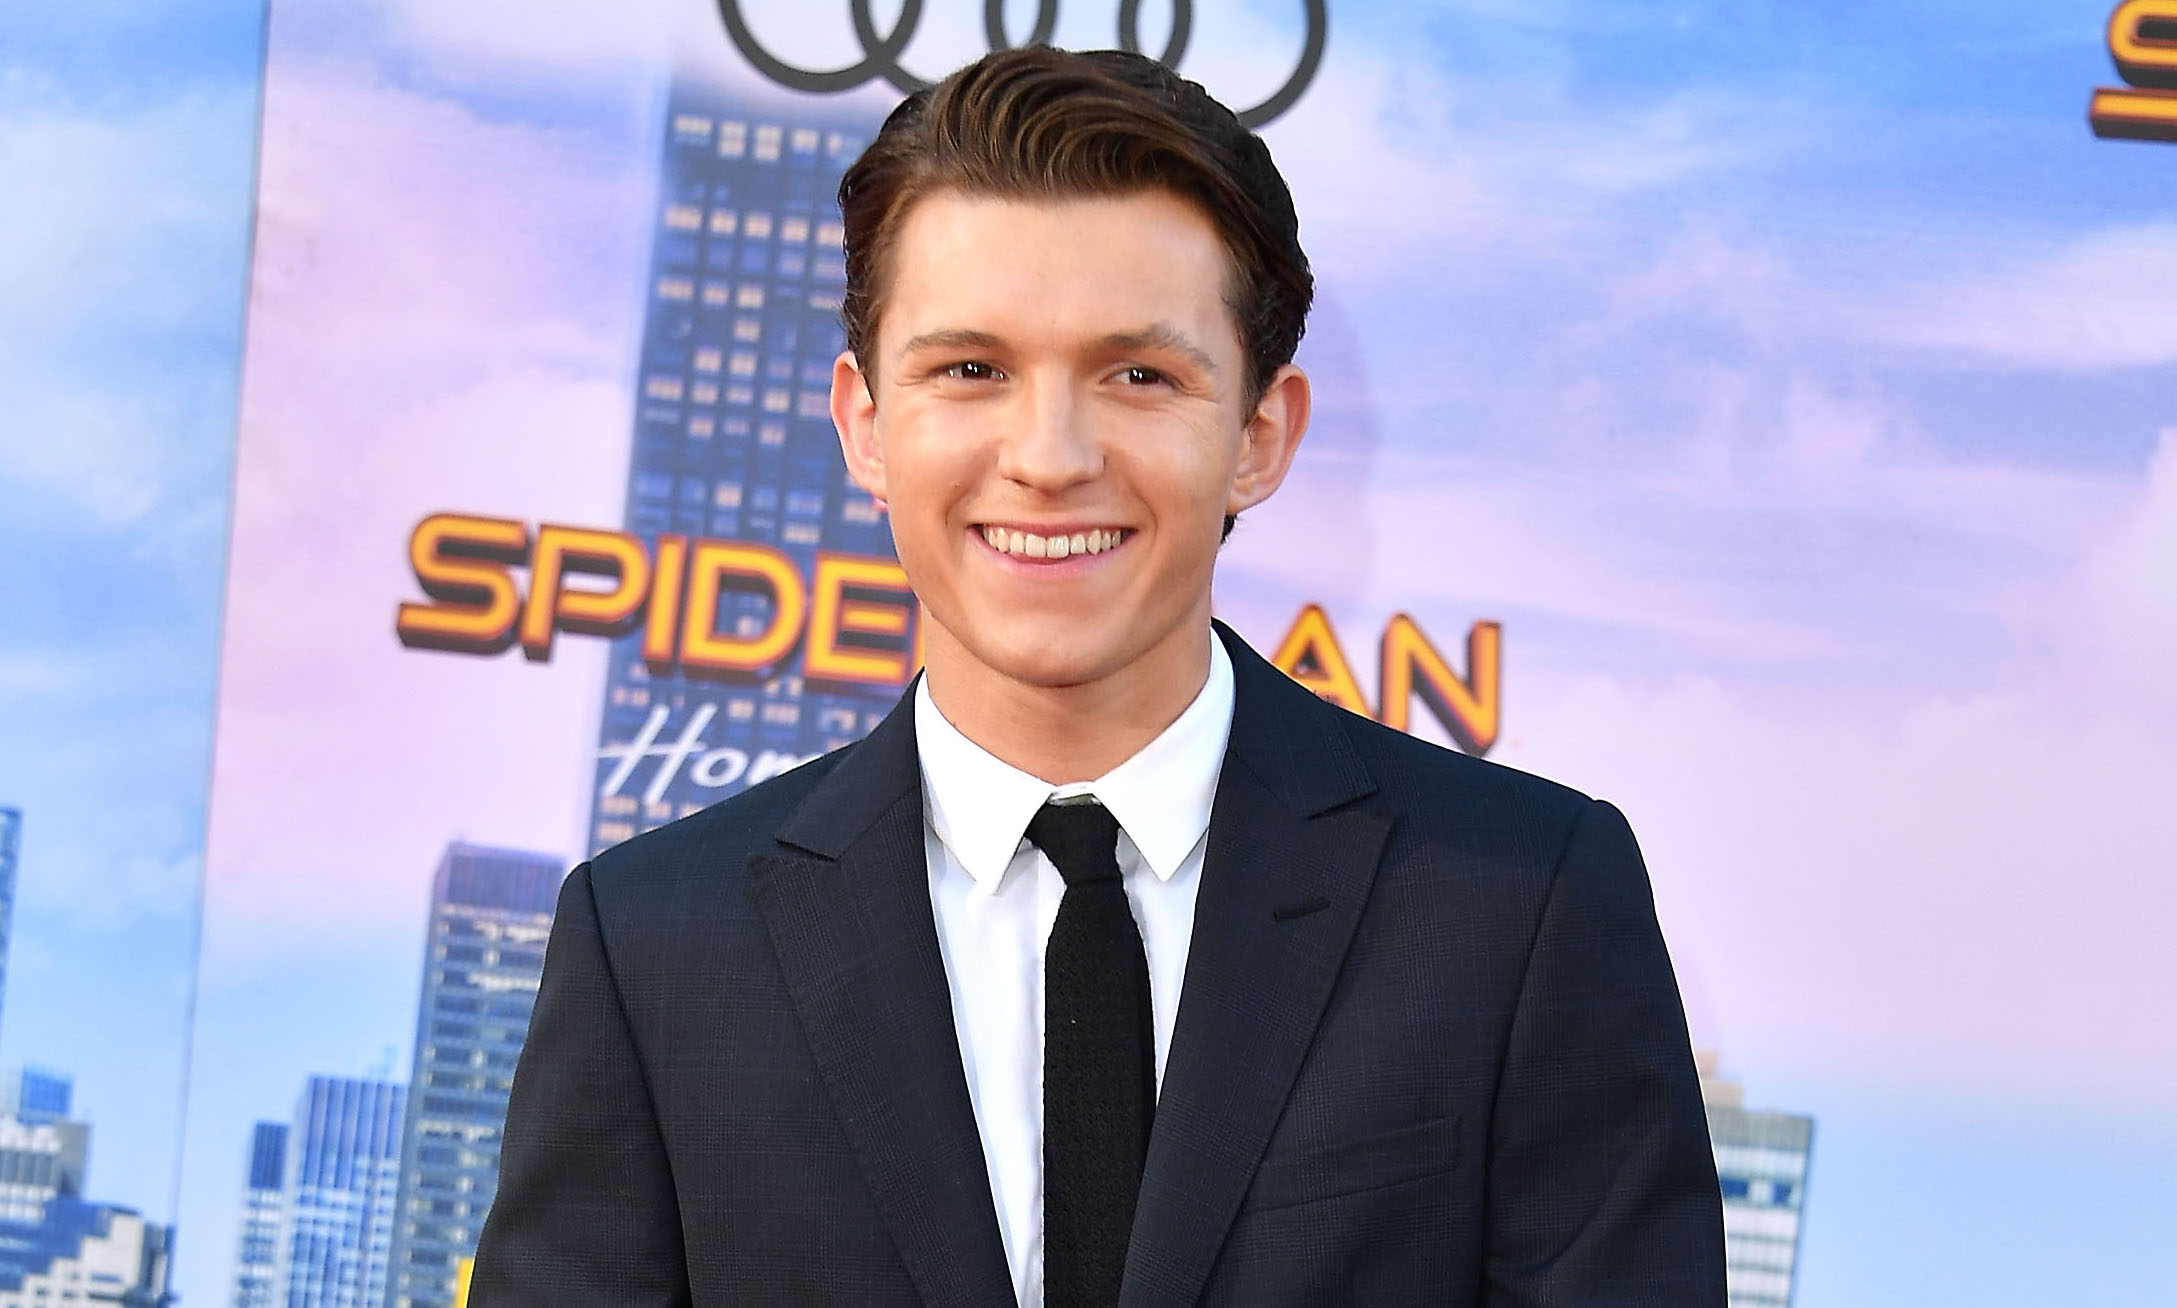 Tom Holland explains that the audition process for Spider-Man was basically like The Hunger Games